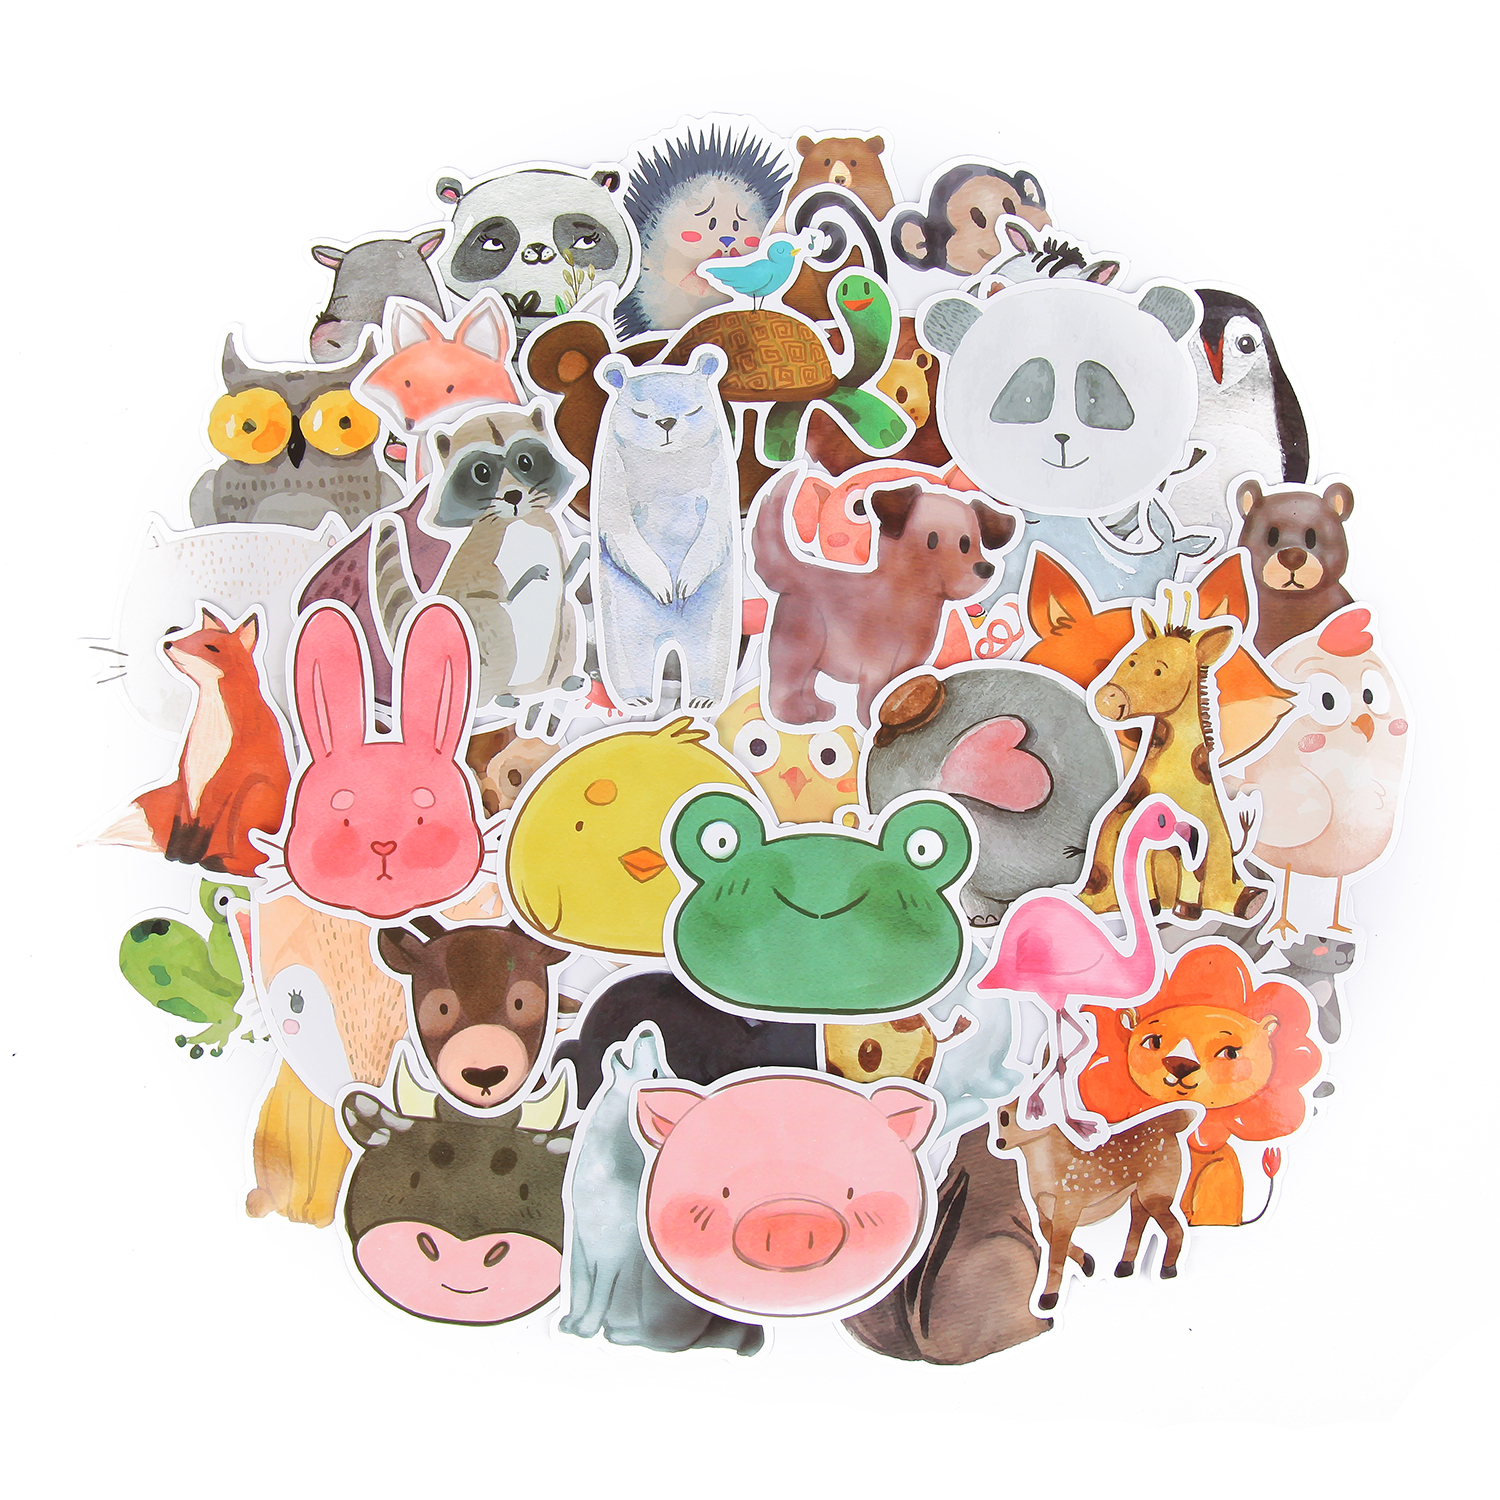 TD ZW 50pcs/lot Waterproof Super Cute Cartoon Animal Stickers For Car Laptop Phone Pad Bicycle Decal Kids Gift Cat Pig Dog-in Stickers from Toys & Hobbies on Aliexpress.com | Alibaba Group